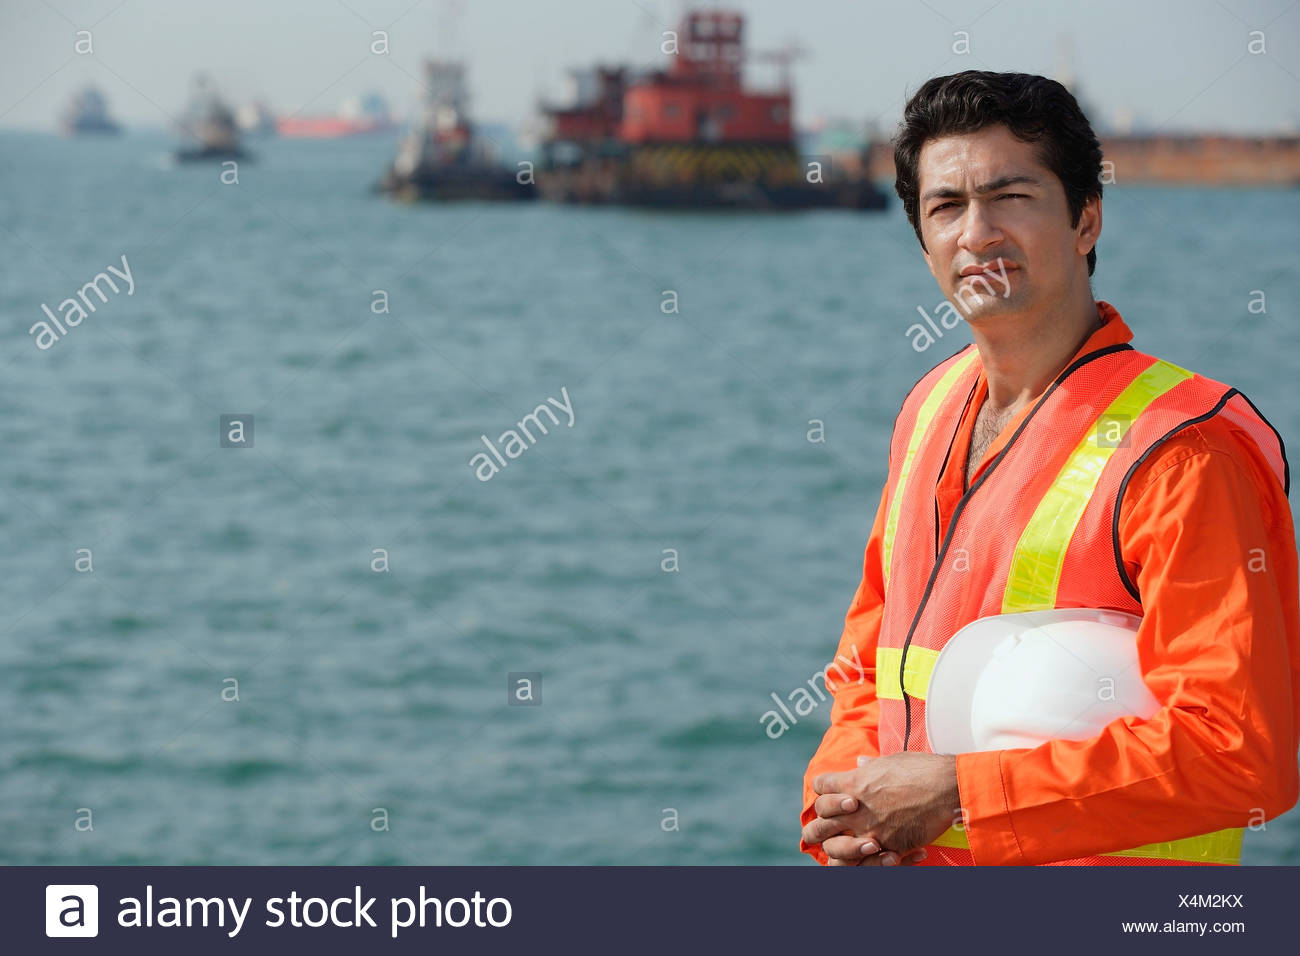 Man in work uniform working at port - Stock Image